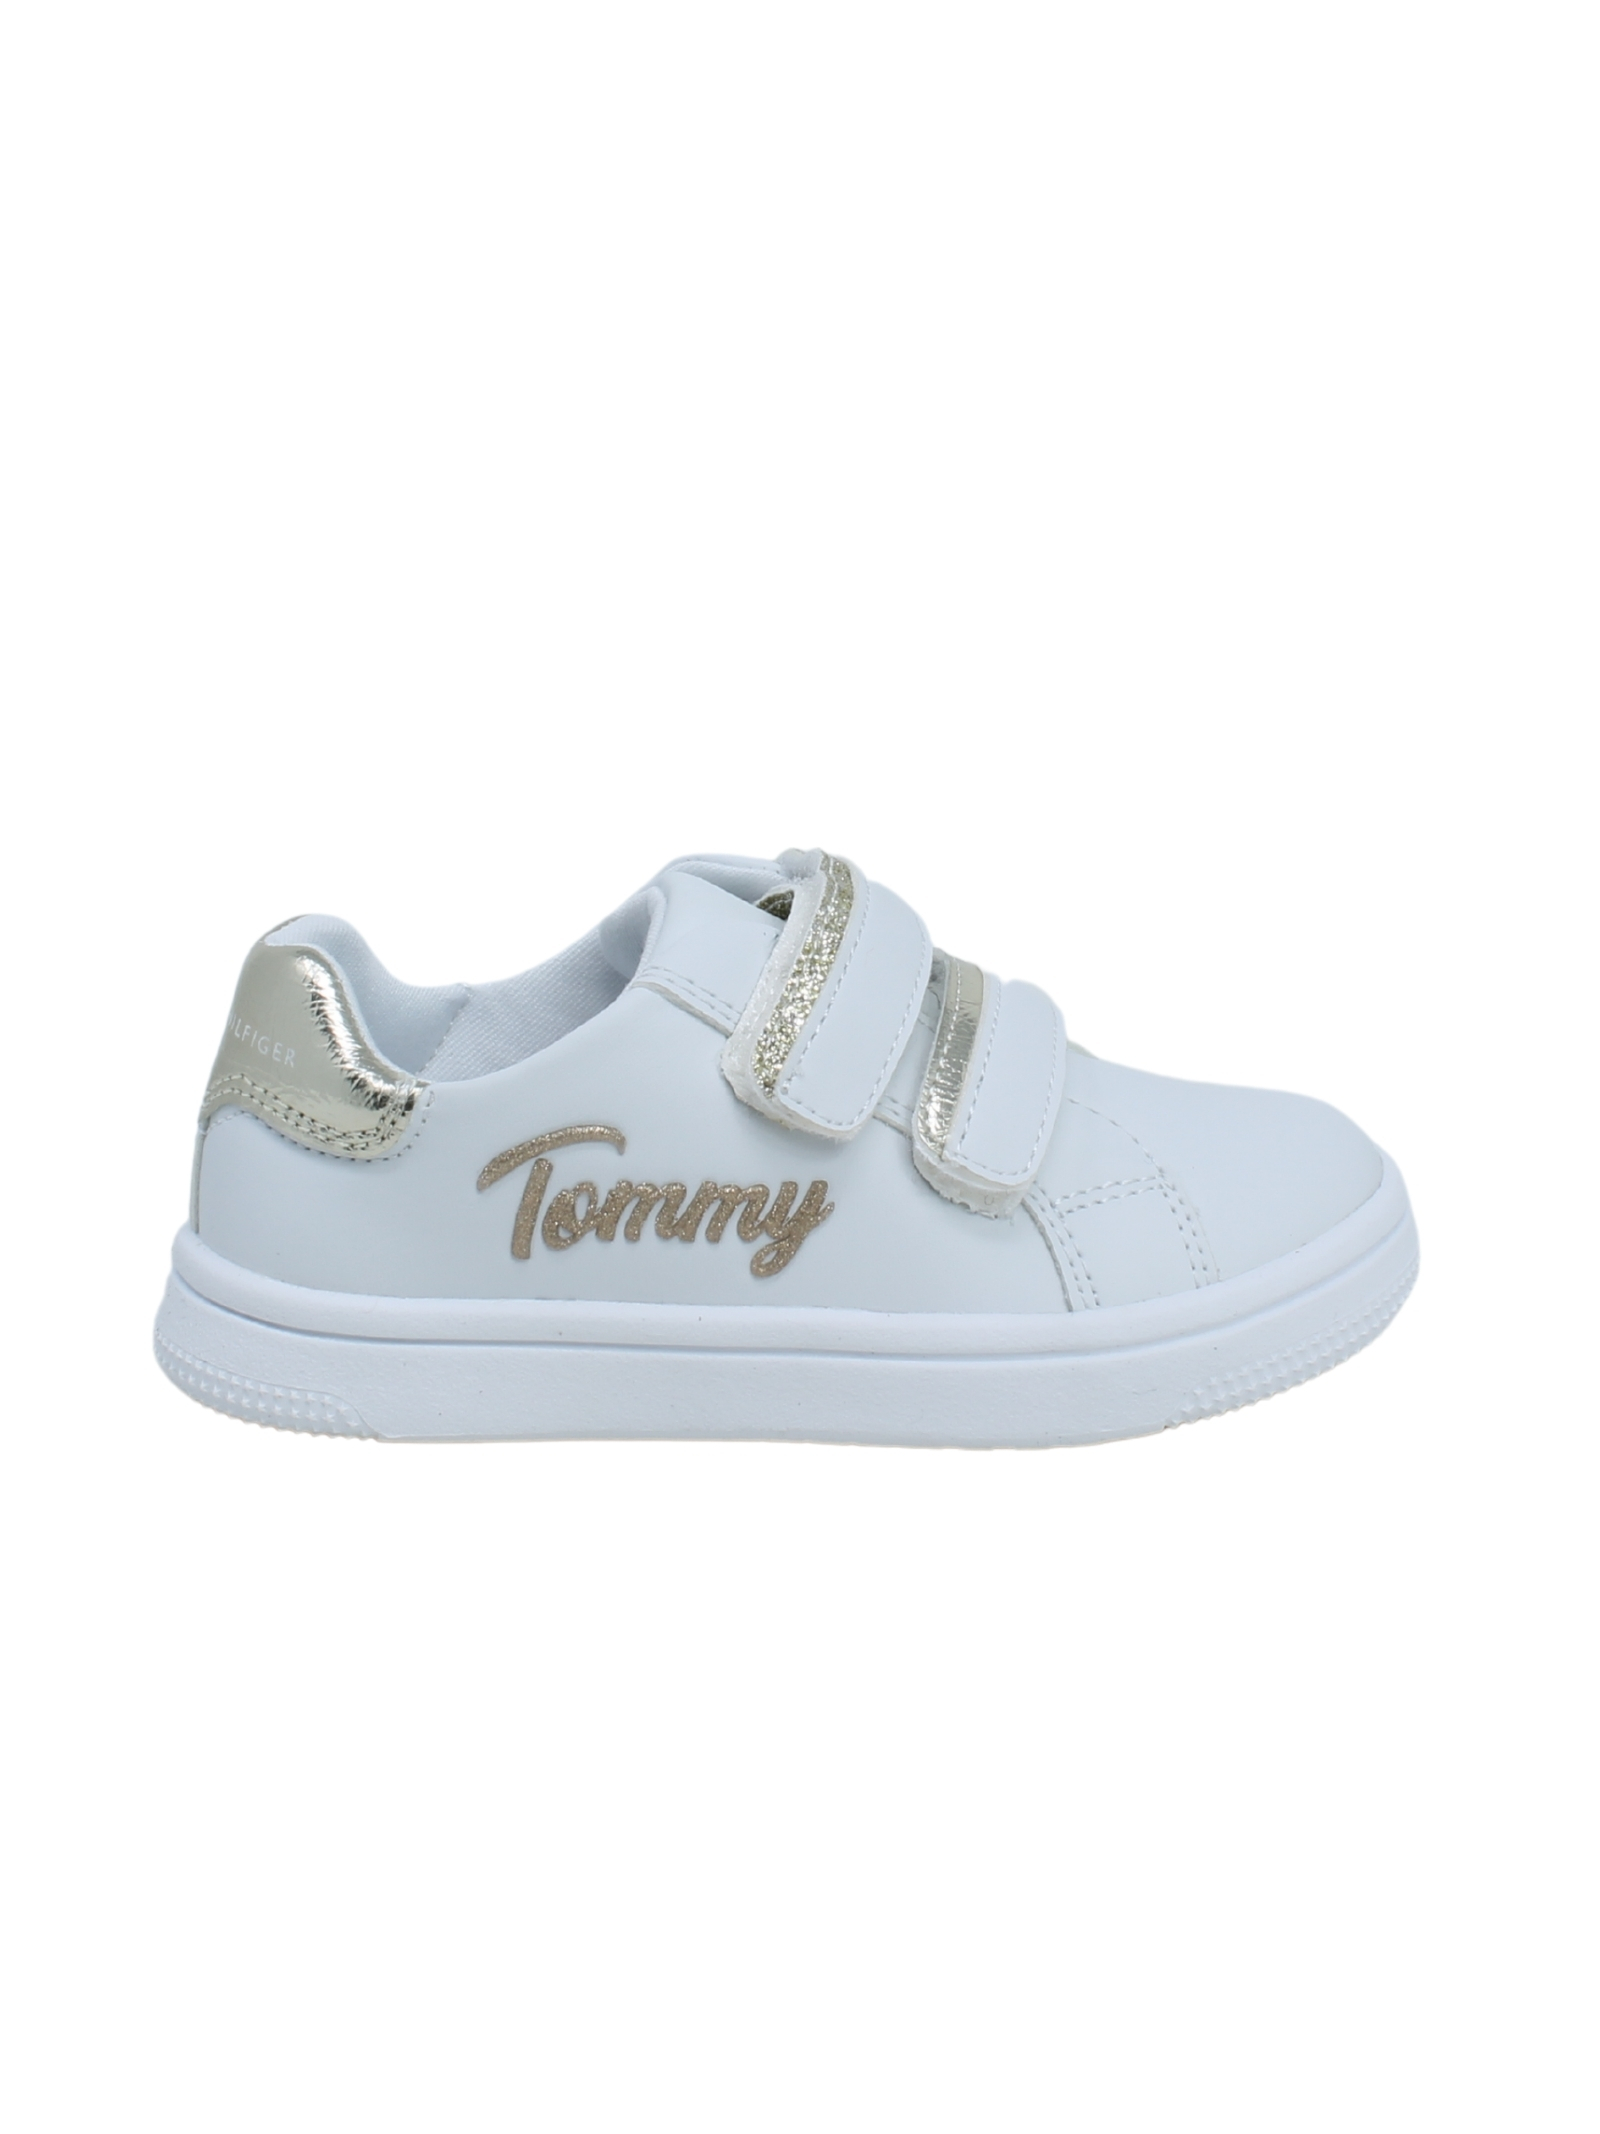 Sneakers Bambina Logo TOMMY HILFIGER KIDS | Sneakers | T1A4310171189X048BIANCO